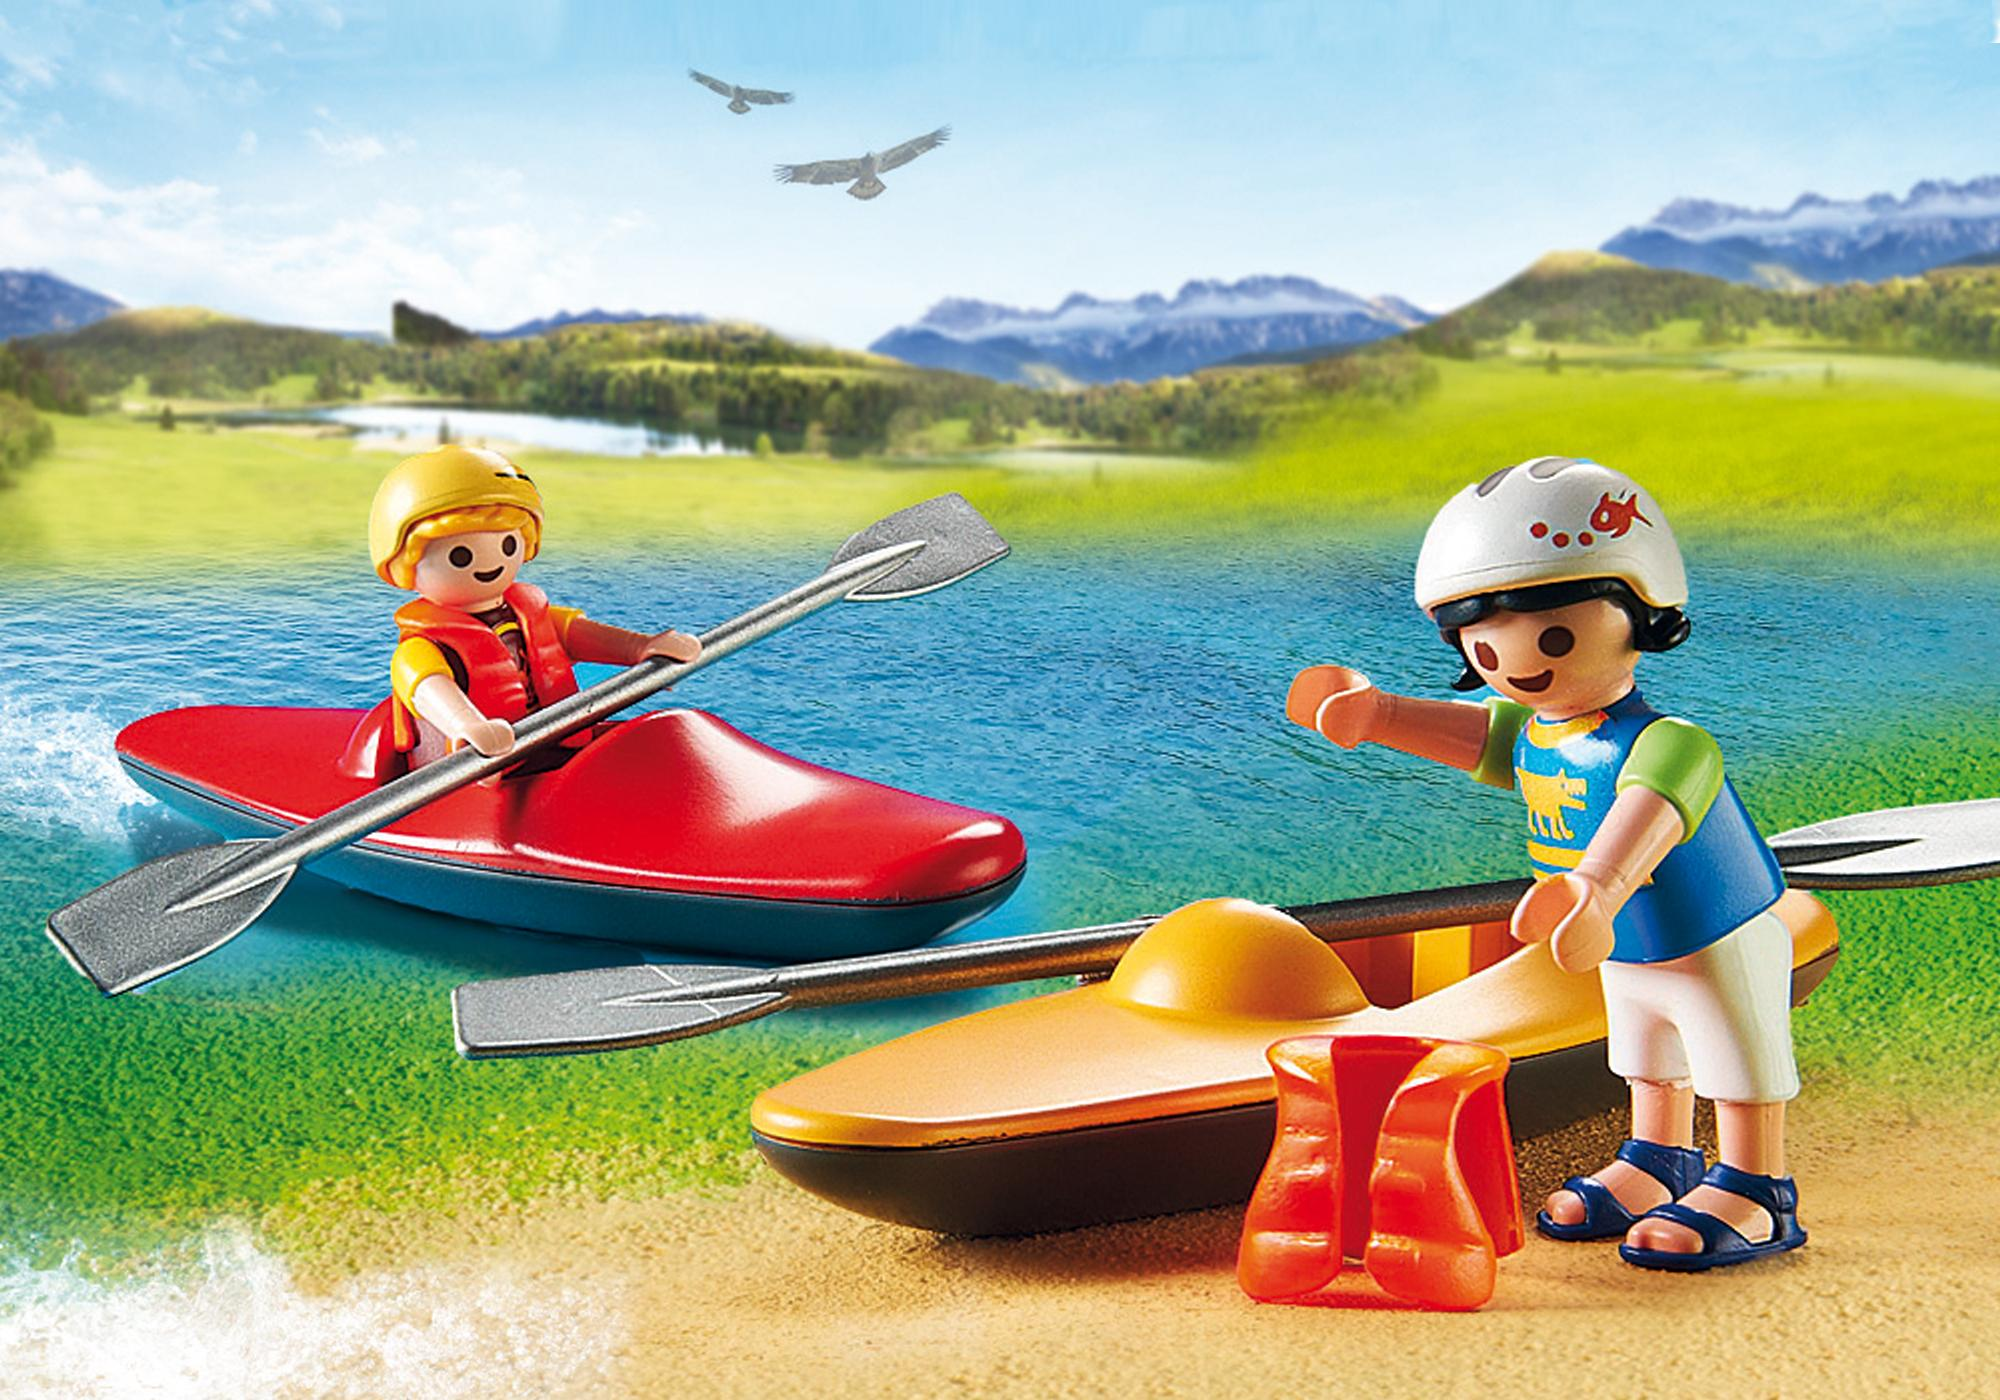 http://media.playmobil.com/i/playmobil/6889_product_extra1